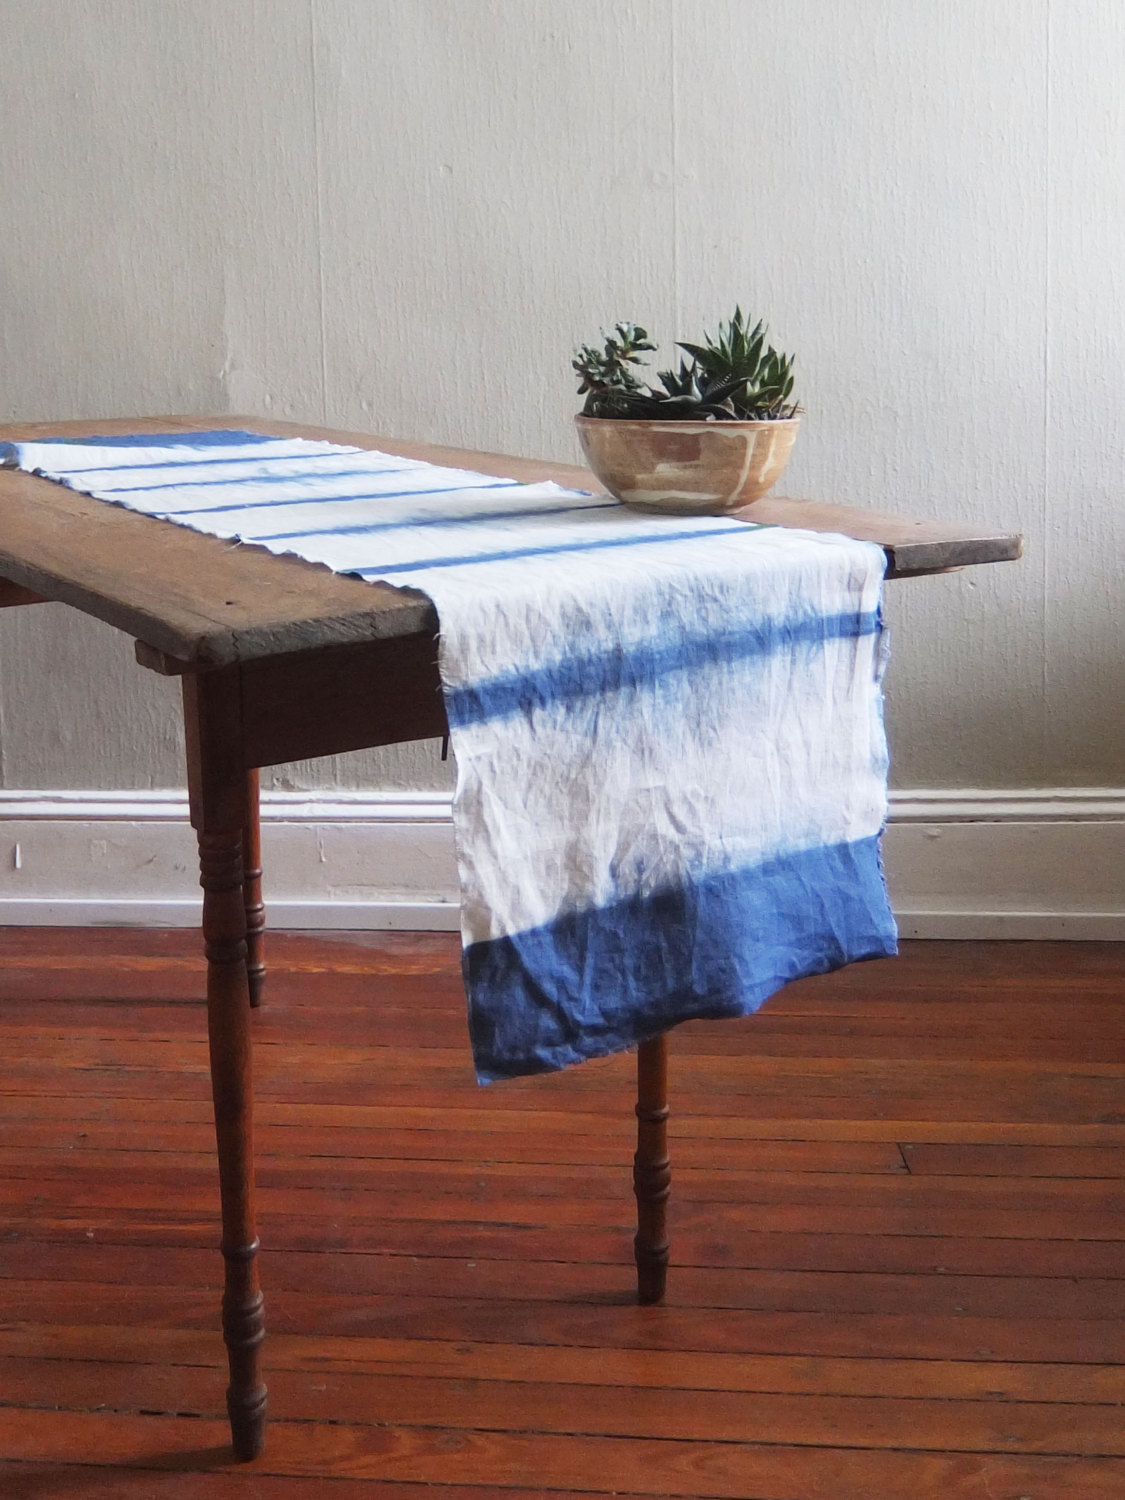 table runner The Finest Table Runners for your Dining Table Shibori table runner from Flora Poste Studio